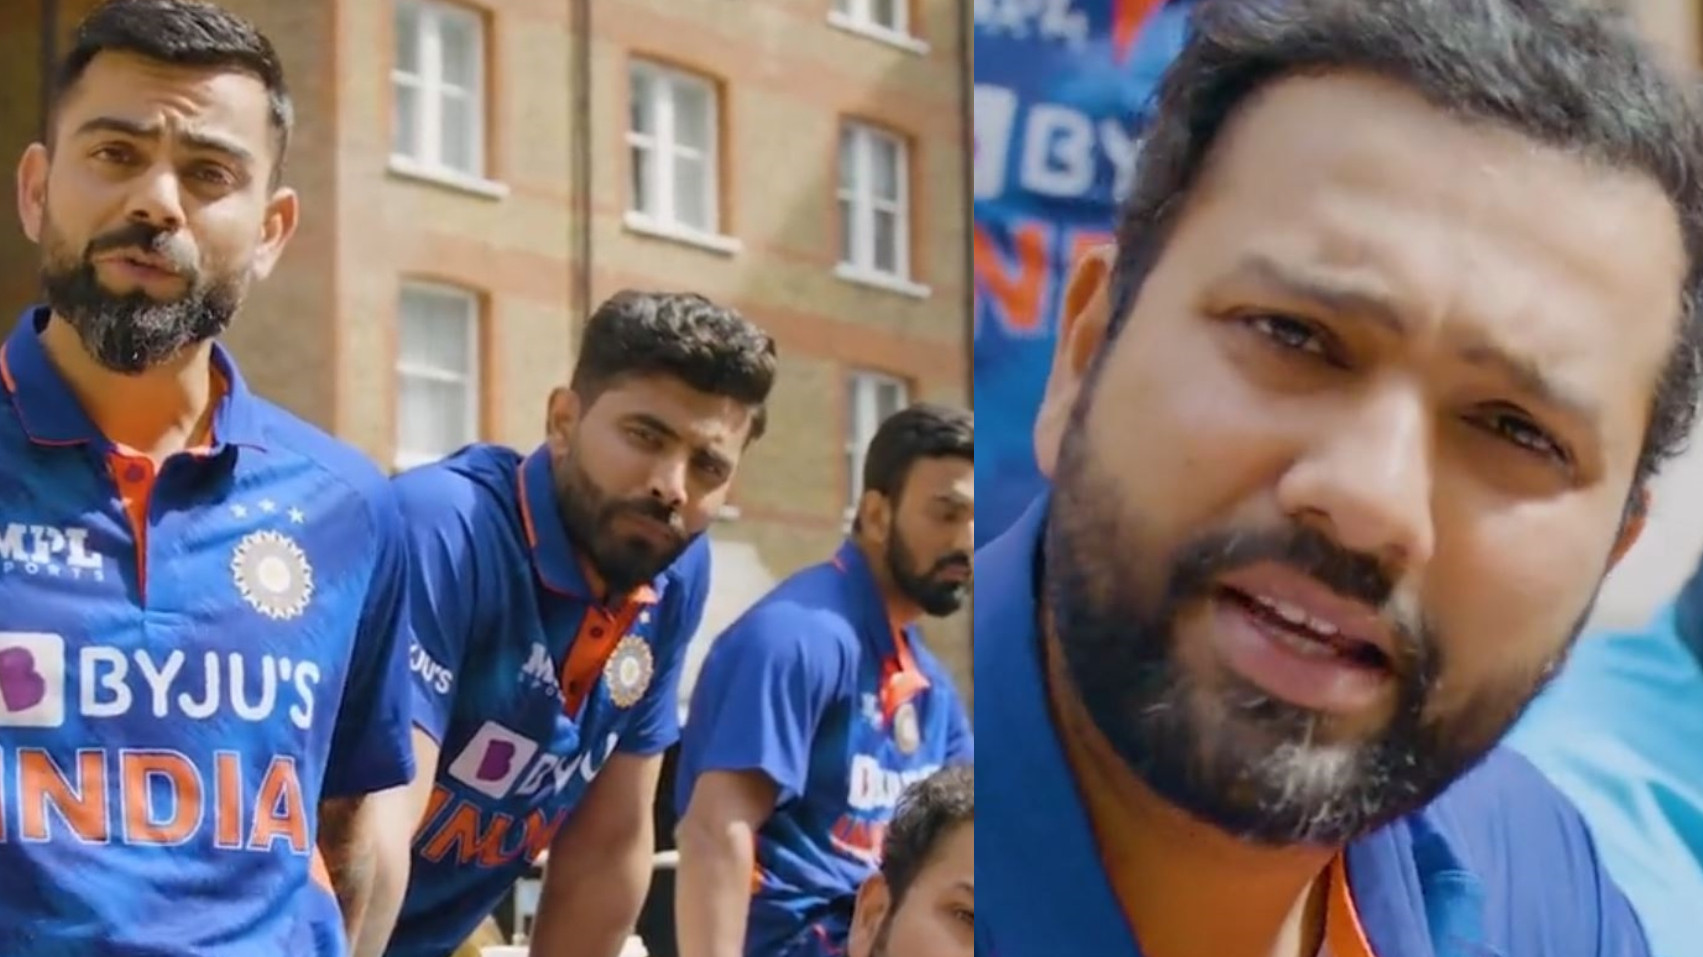 WATCH- Virat Kohli, Rohit Sharma and other India players talk about the new Indian team jersey